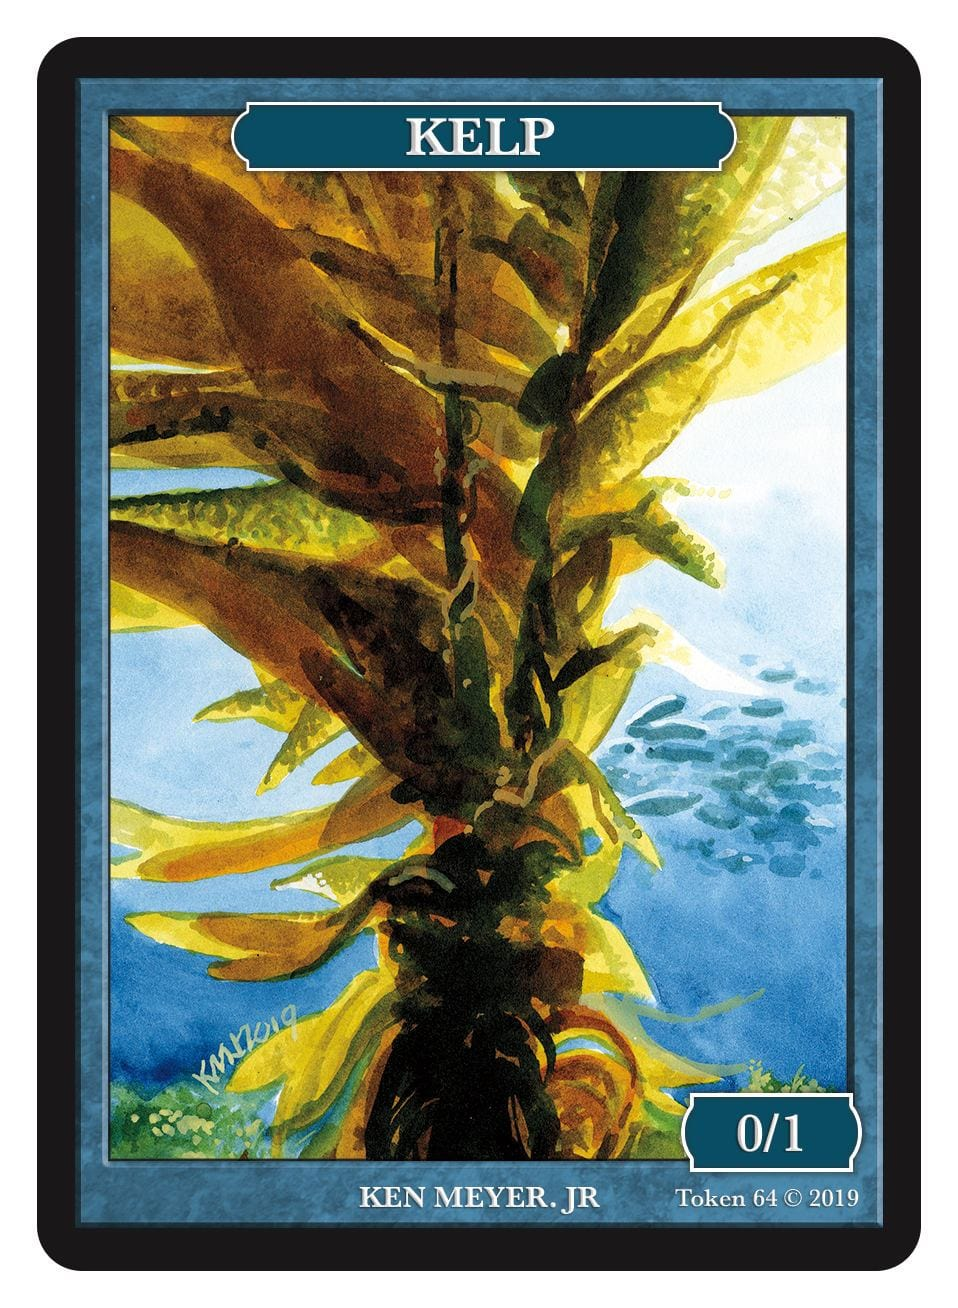 Kelp Token (0/1) by Ken Meyer Jr. - Token - Original Magic Art - Accessories for Magic the Gathering and other card games